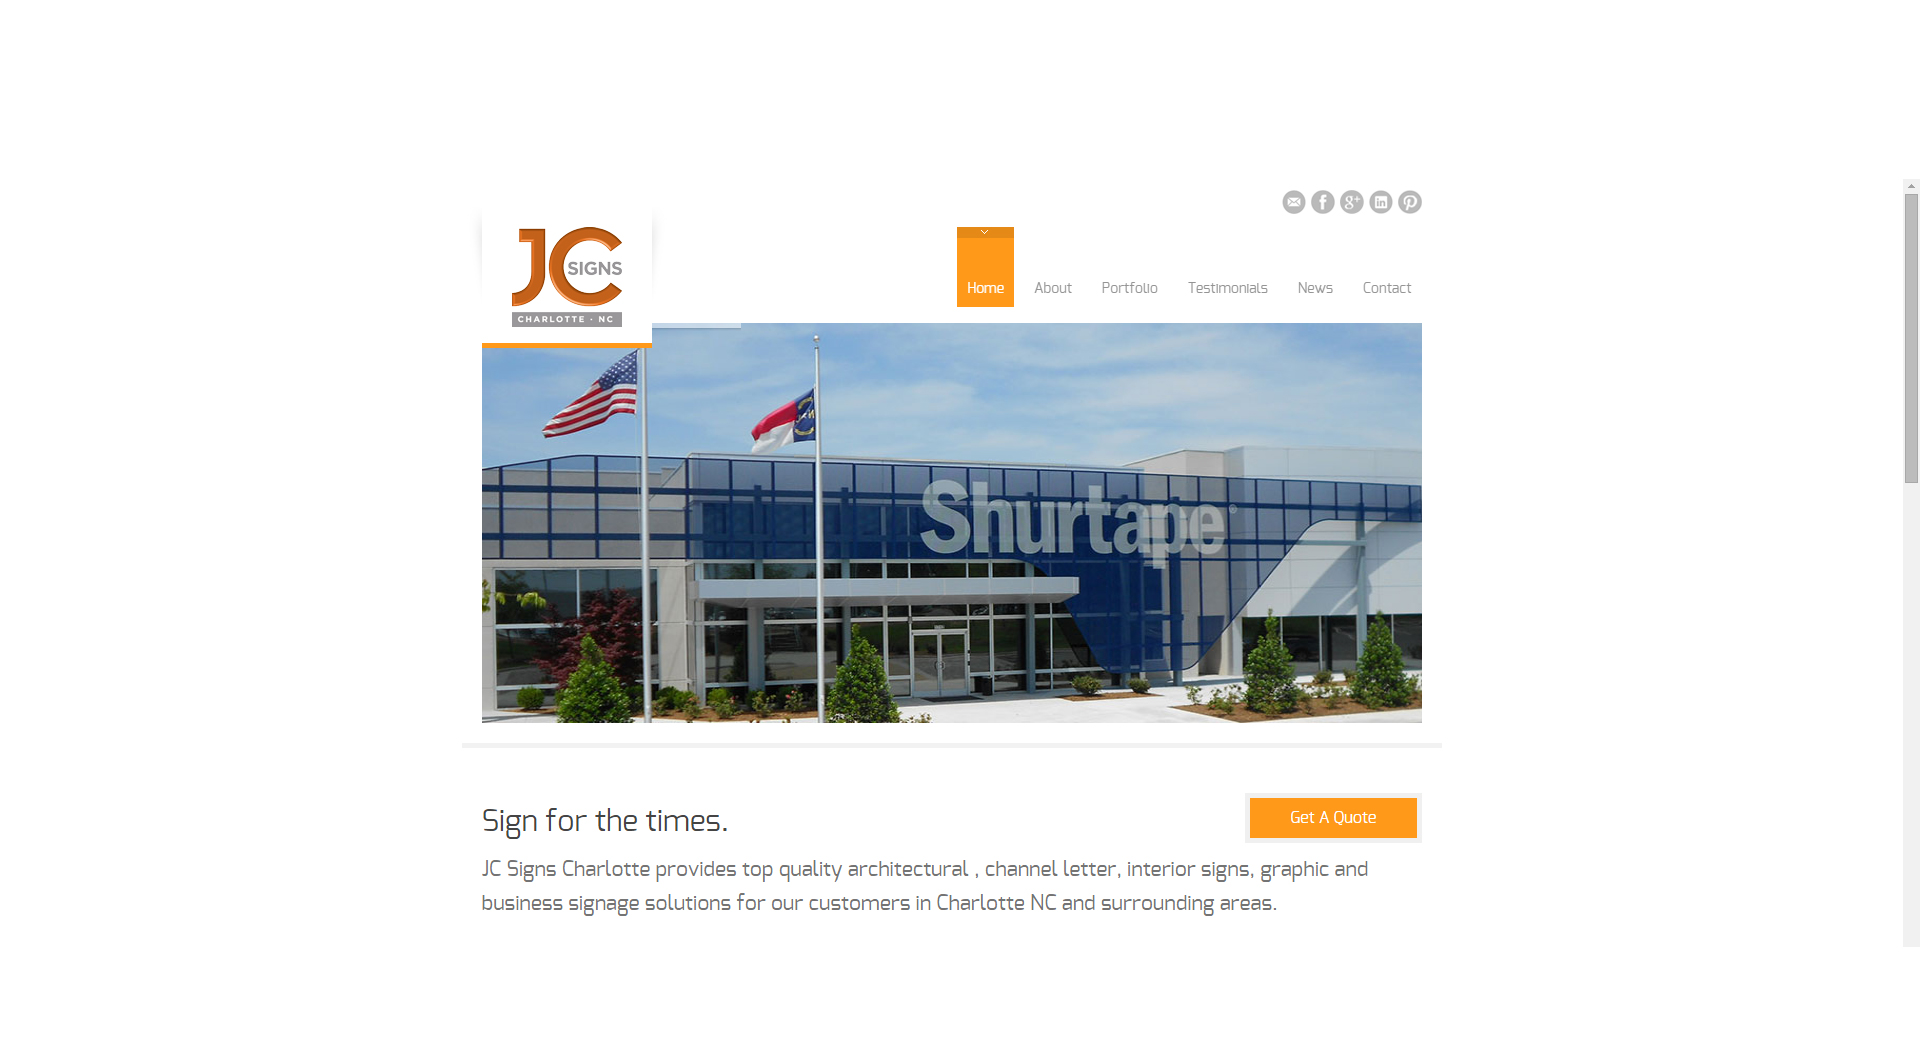 Website Design by CCP Web Design - JC Signs Charlotte